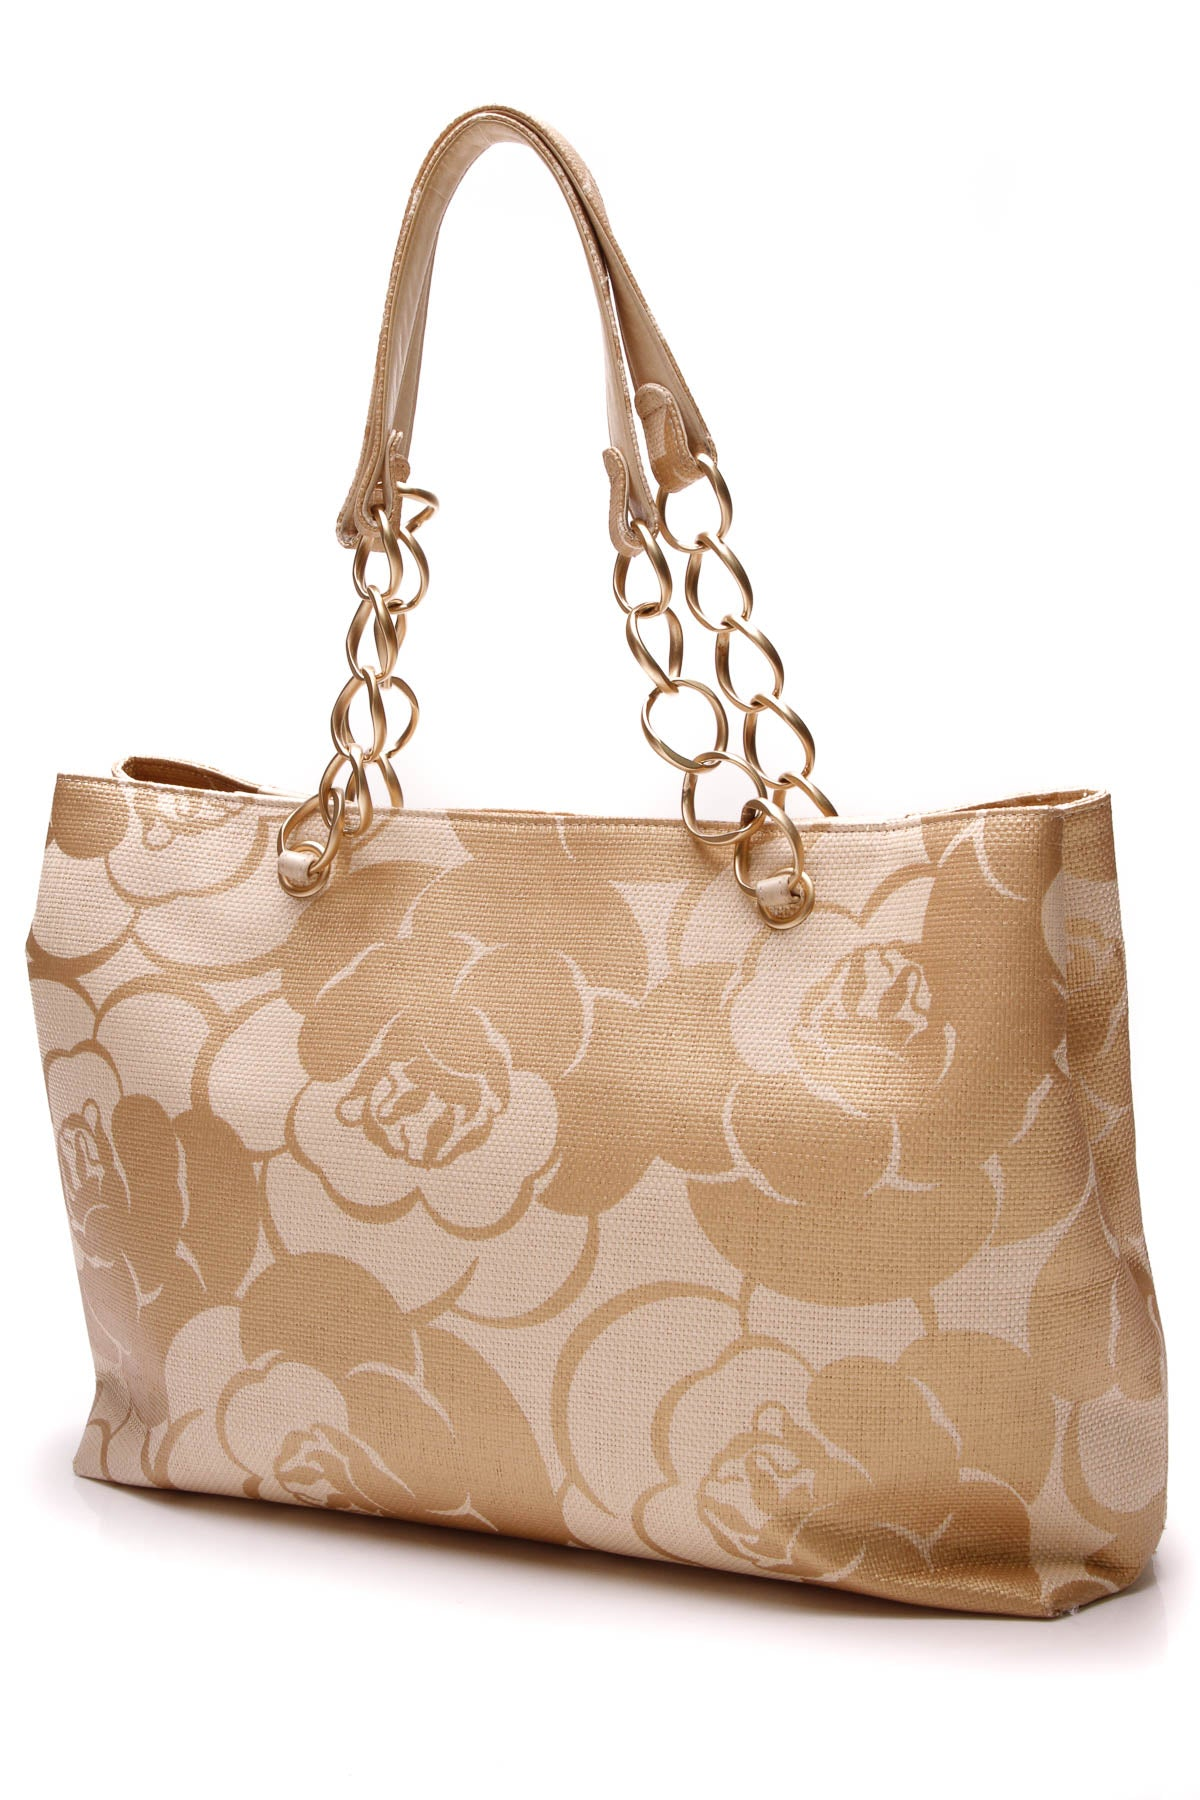 f41fb211805eb4 Chanel Straw Camellia Tote Bag - Beige/Gold – Couture USA